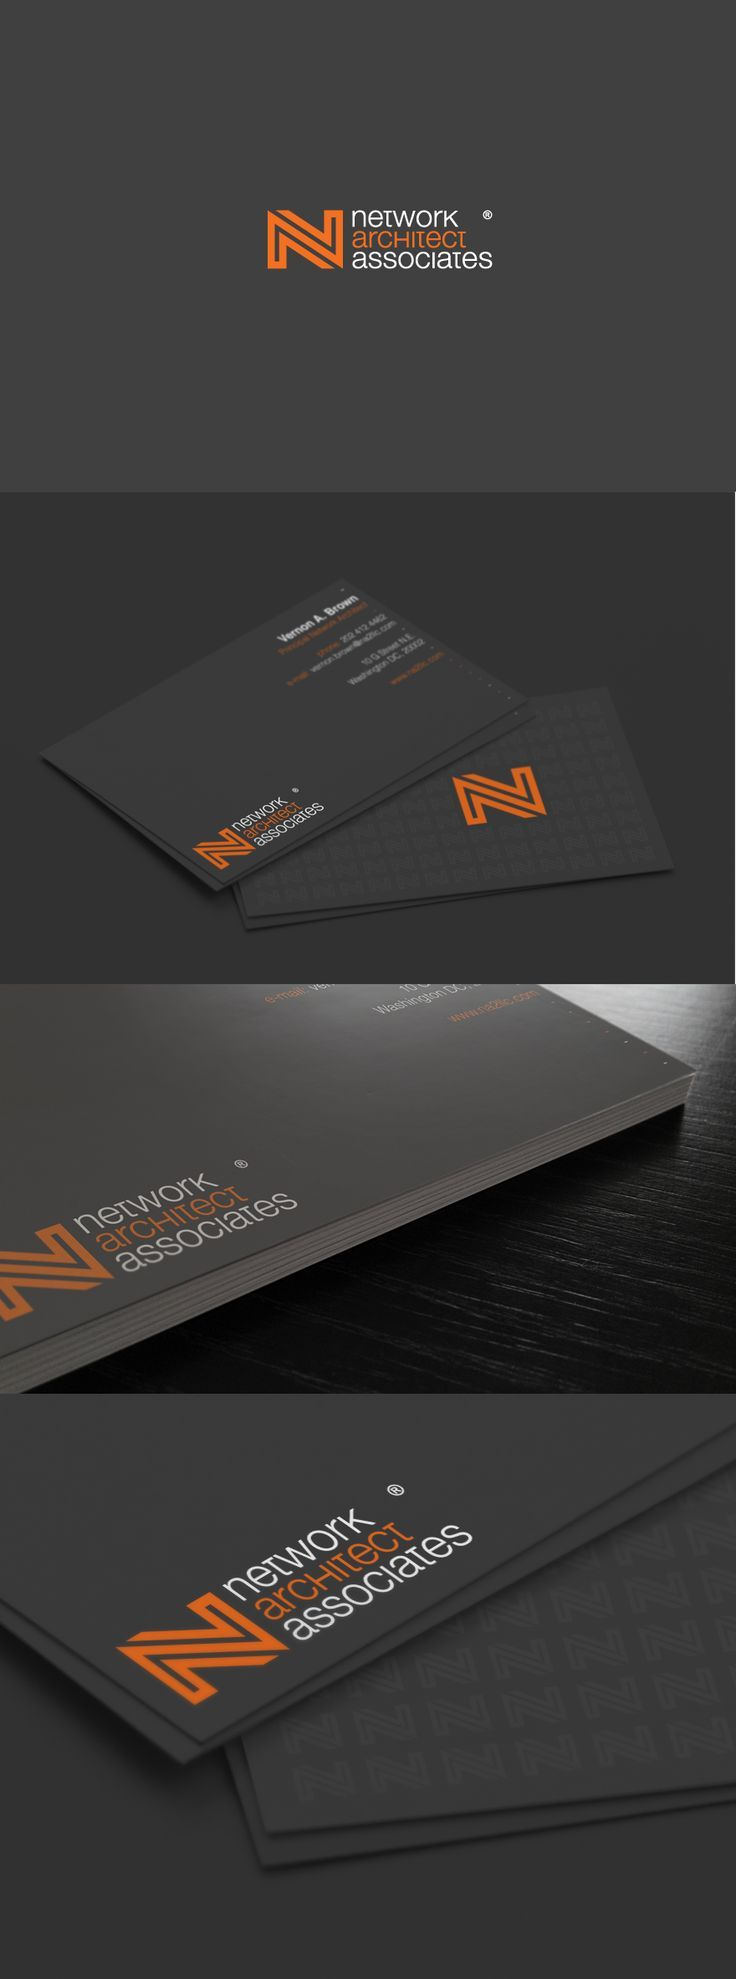 Weekly business card design for everyone!